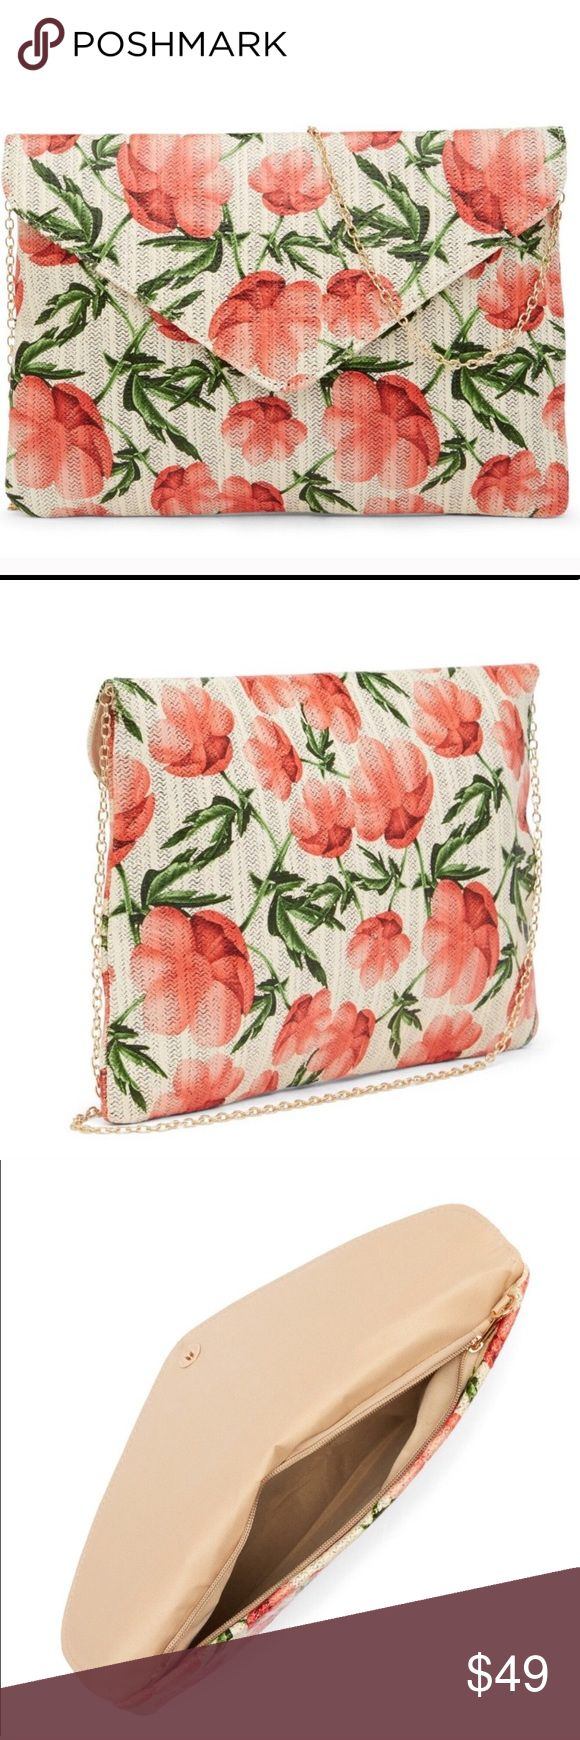 Spring Floral Straw Clutch Fold over closure comes with strap 11.5 W x 7.75 H x 1.5 D Pink Haley Bags Clutches & Wristlets